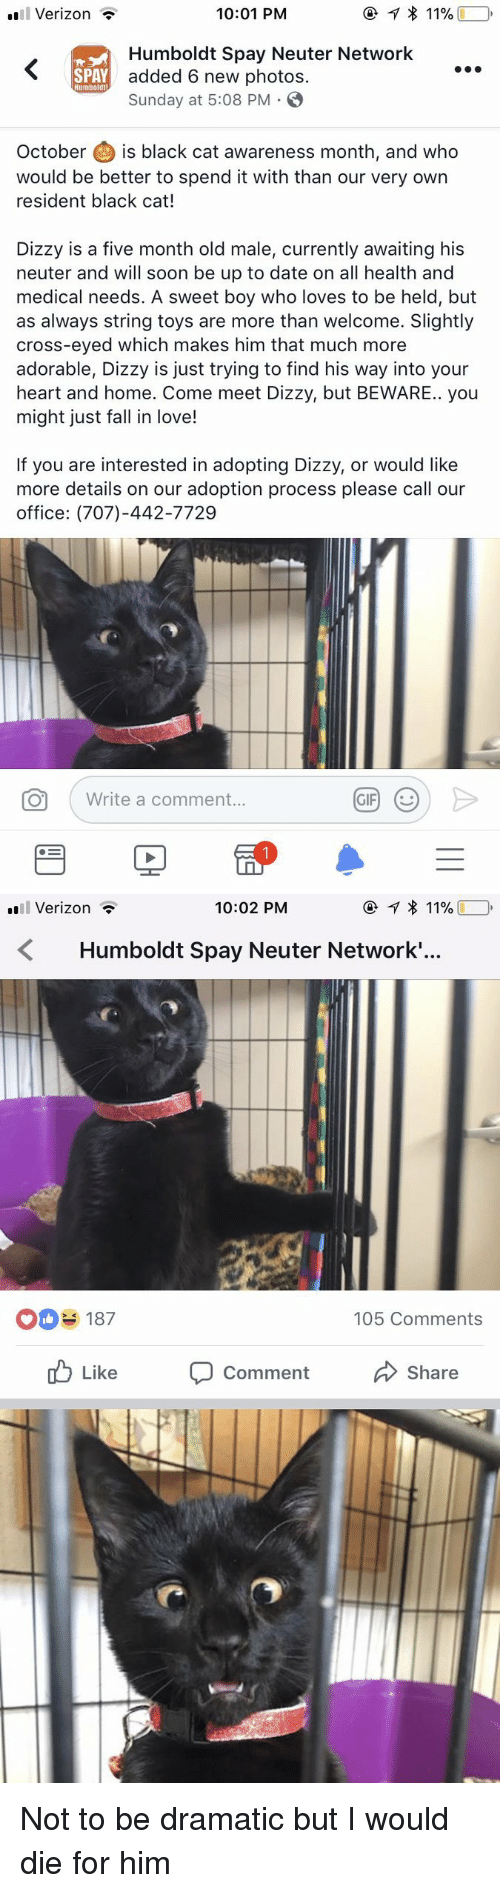 neuter: Verizon -  10:01 PM  Humboldt Spay Neuter Network  added 6 new photos.  Sunday at 5:08 PM .  SPAY  Humboldt  October is black cat awareness month, and who  would be better to spend it with than our very own  resident black cat!  Dizzy is a five month old male, currently awaiting his  neuter and will soon be up to date on all health and  medical needs. A sweet boy who loves to be held, but  as always string toys are more than welcome. Slightly  cross-eyed which makes him that much more  adorable, Dizzy is just trying to find his way into your  heart and home. Come meet Dizzy, but BEWARE.. you  might just fall in love!  If you are interested in adopting Dizzy, or would like  more details on our adoption process please call our  office: (707)-442-7729  O  Write a comment   Verizon *  10:02 PM  Humboldt Spay Neuter Network.'..  O187  105 Comments  ub Like Comment  Share <p>Not to be dramatic but I would die for him<br/></p>